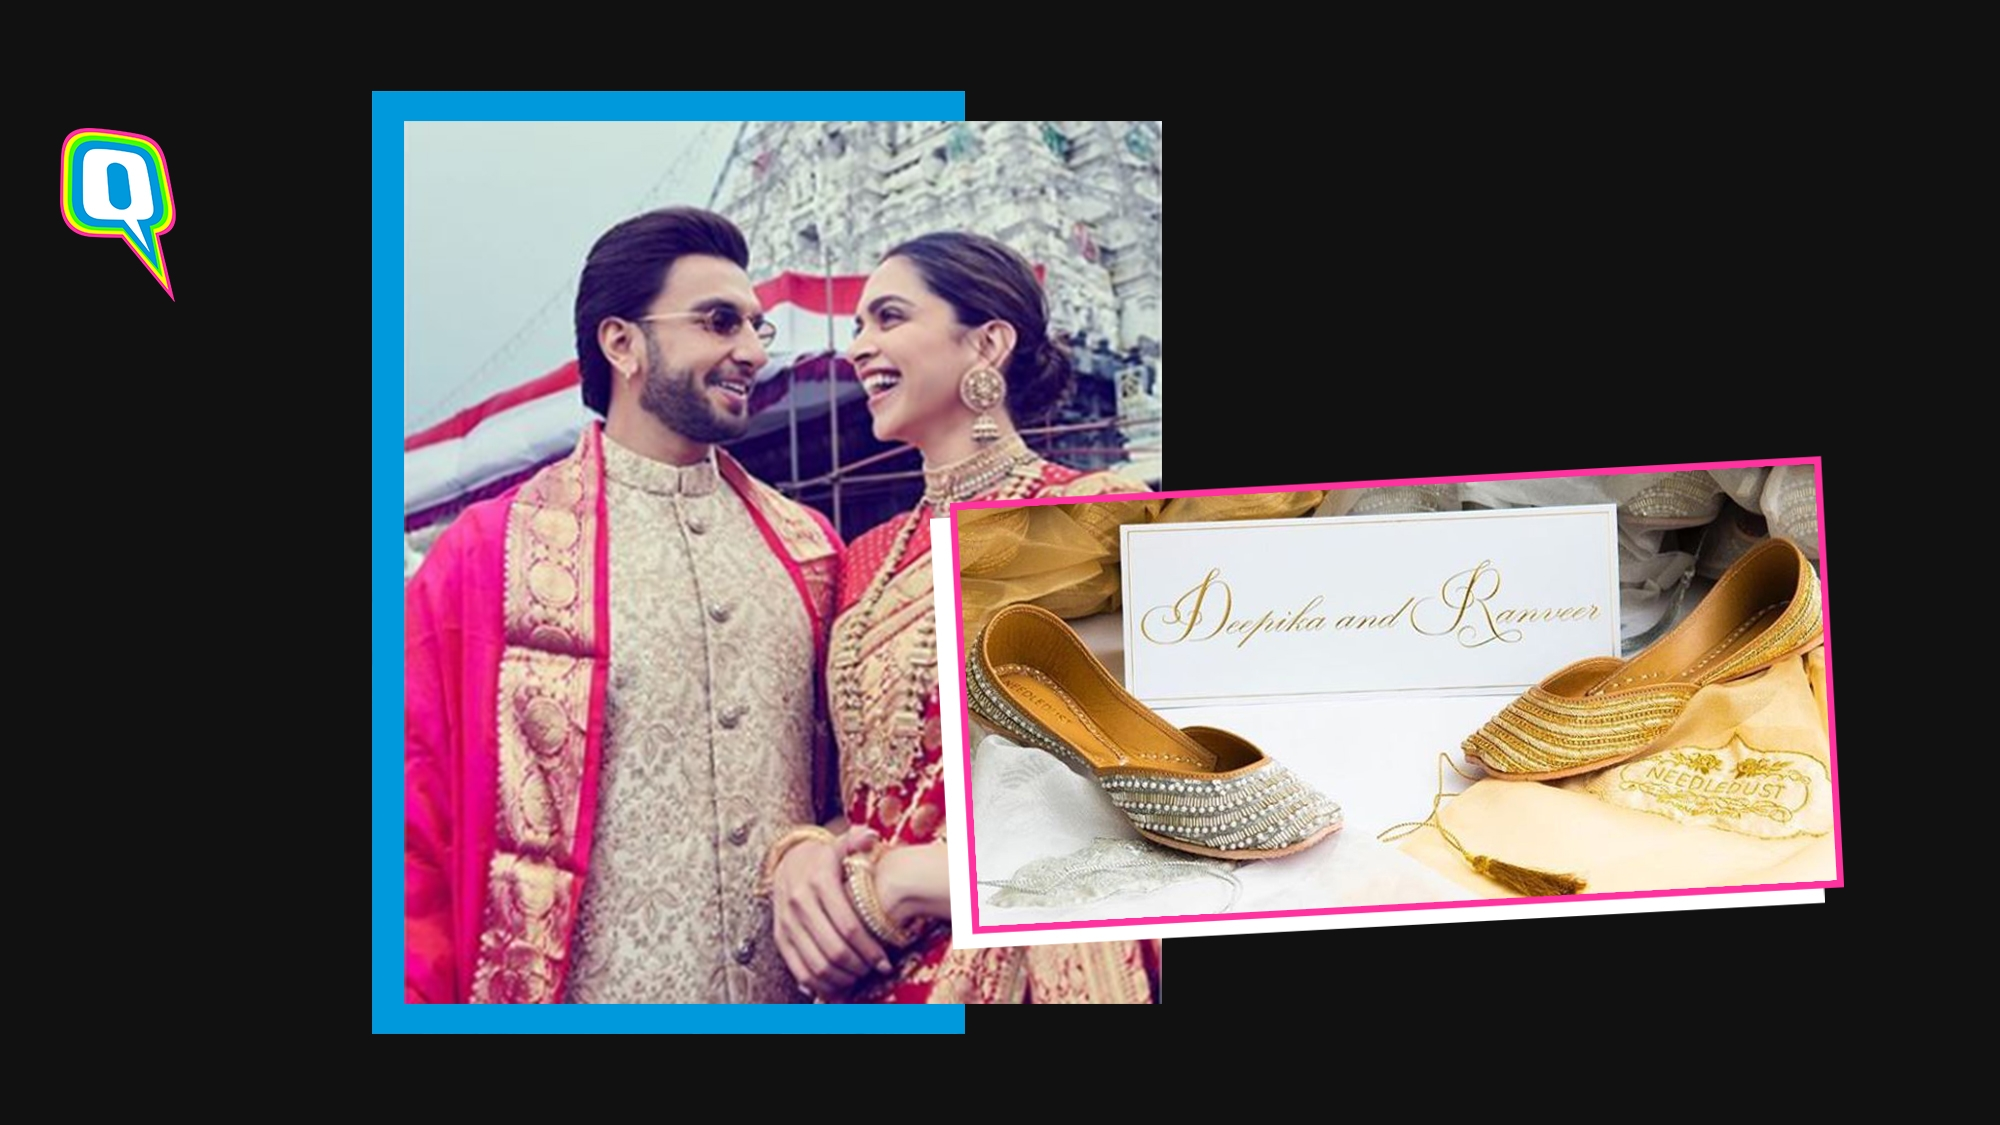 How to 'UnCopy' the Deep-Veer Shaadi: A Wedding Style-guide